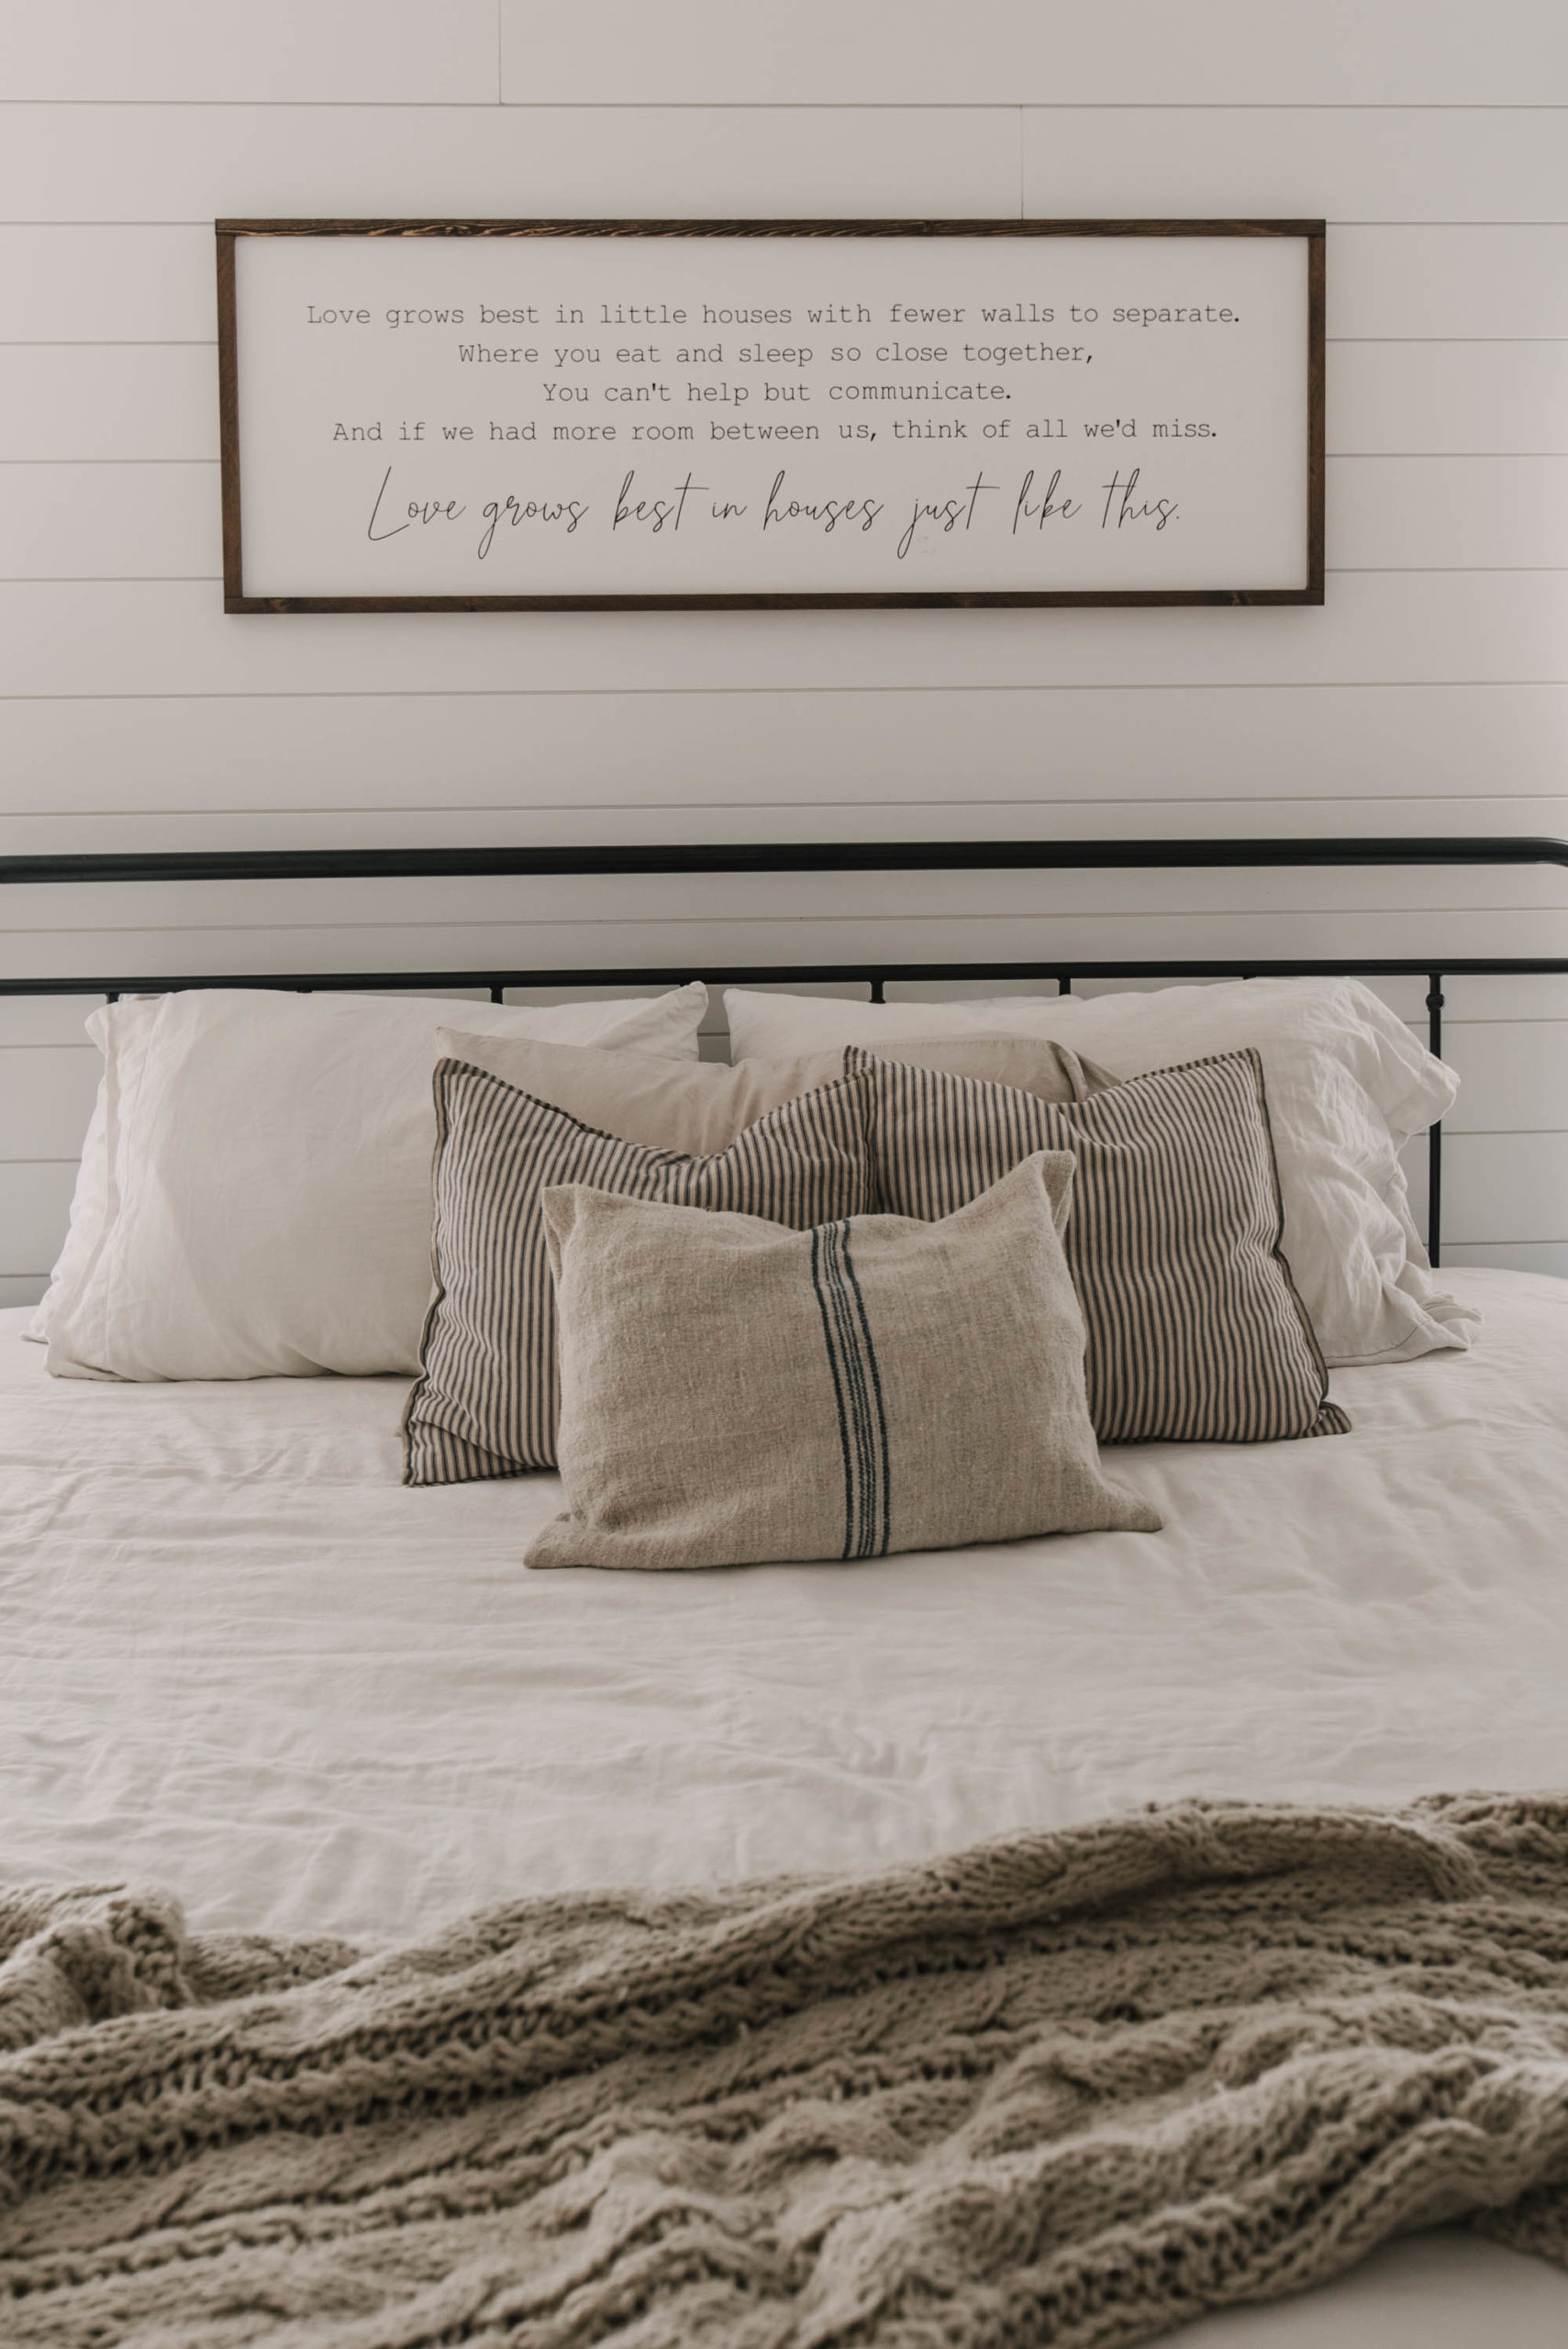 Farmhouse bedroom decor with wooden sign